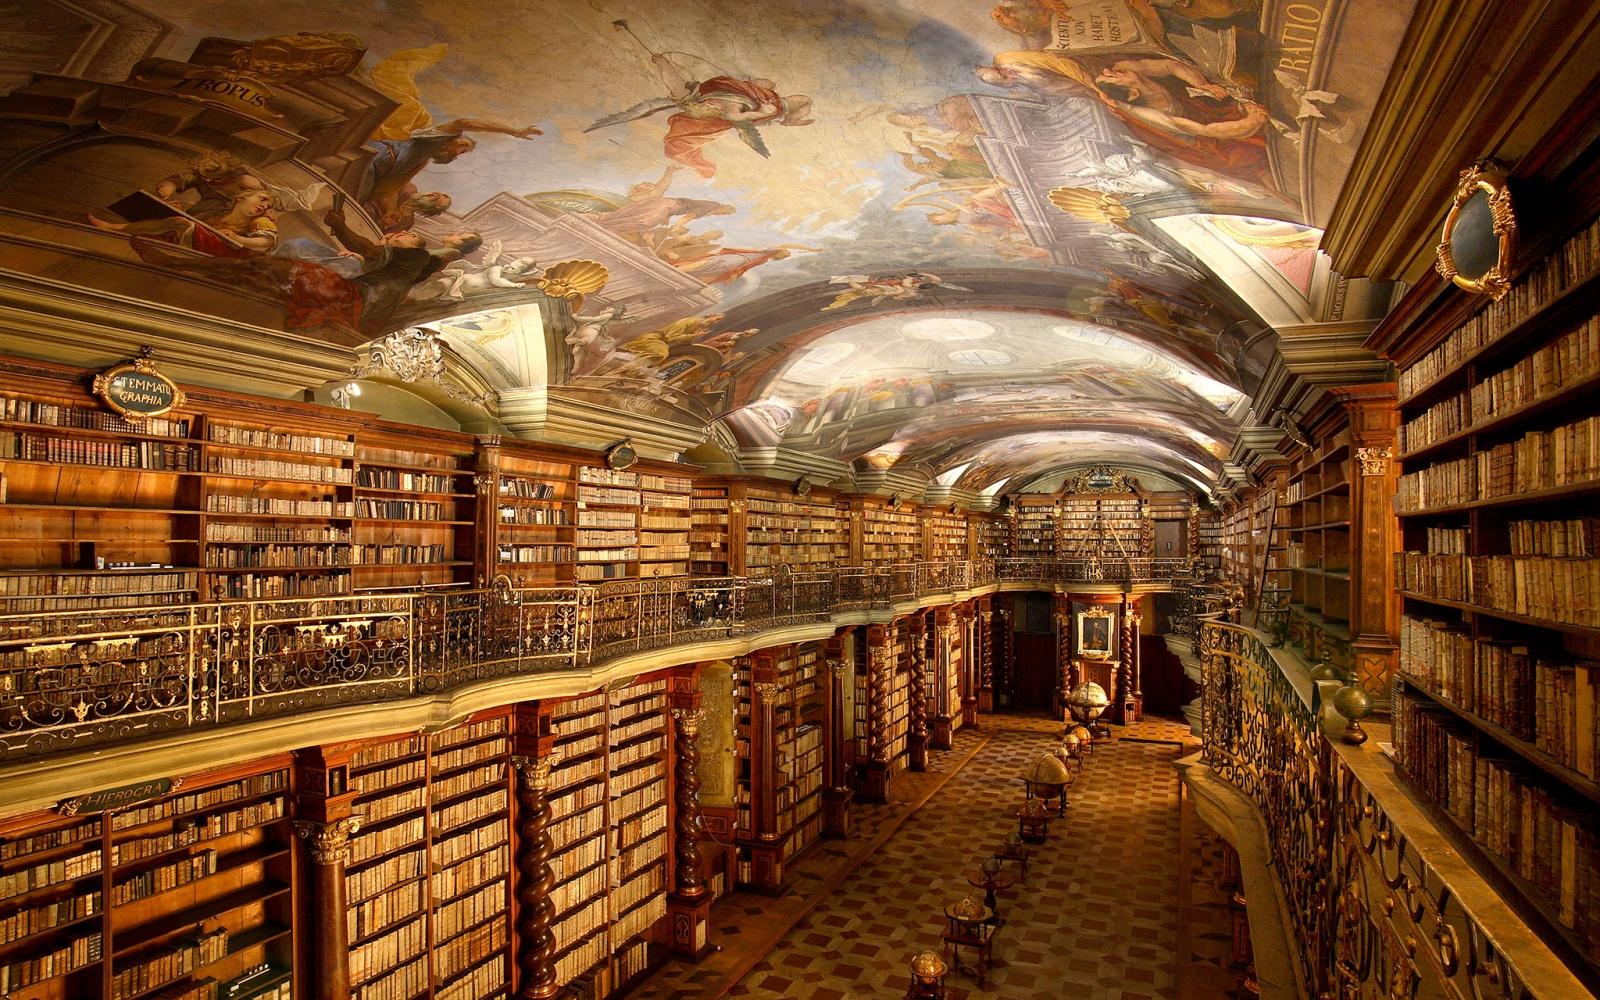 Most Amazing Libraries around the world, Best Libraries around the world, world's best libraries, most amazing libraries, travel, explore world, lifestyle